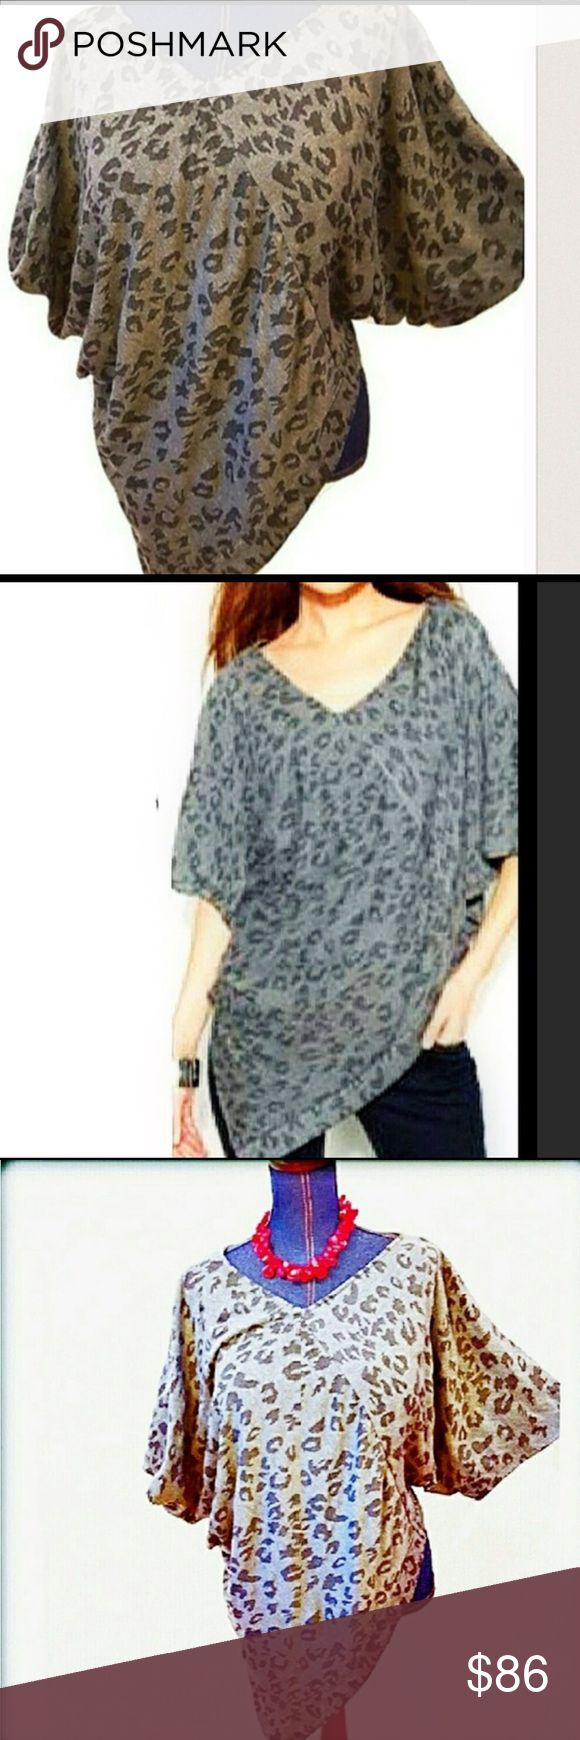 VINCE CAMUTO S/M Animal Print Short Sleeve Top Two by Vince Camuto S/M animal print asymmetrical poncho top. I have this top & just Adore it! Equally fabulous with leggings to lounge in or dressed up with heeled booties & jewelry for a night out. Eye catching Gray & black. Great with leggings/skinny jeans and white skinny capris! NEW w/ tags. SIZE is S/M, since this is not an option, I put both down. EITHER 1 You Choose You Will Receive THE S/M. Any ?, Ask! More of a relaxed fit, IMO. Love…